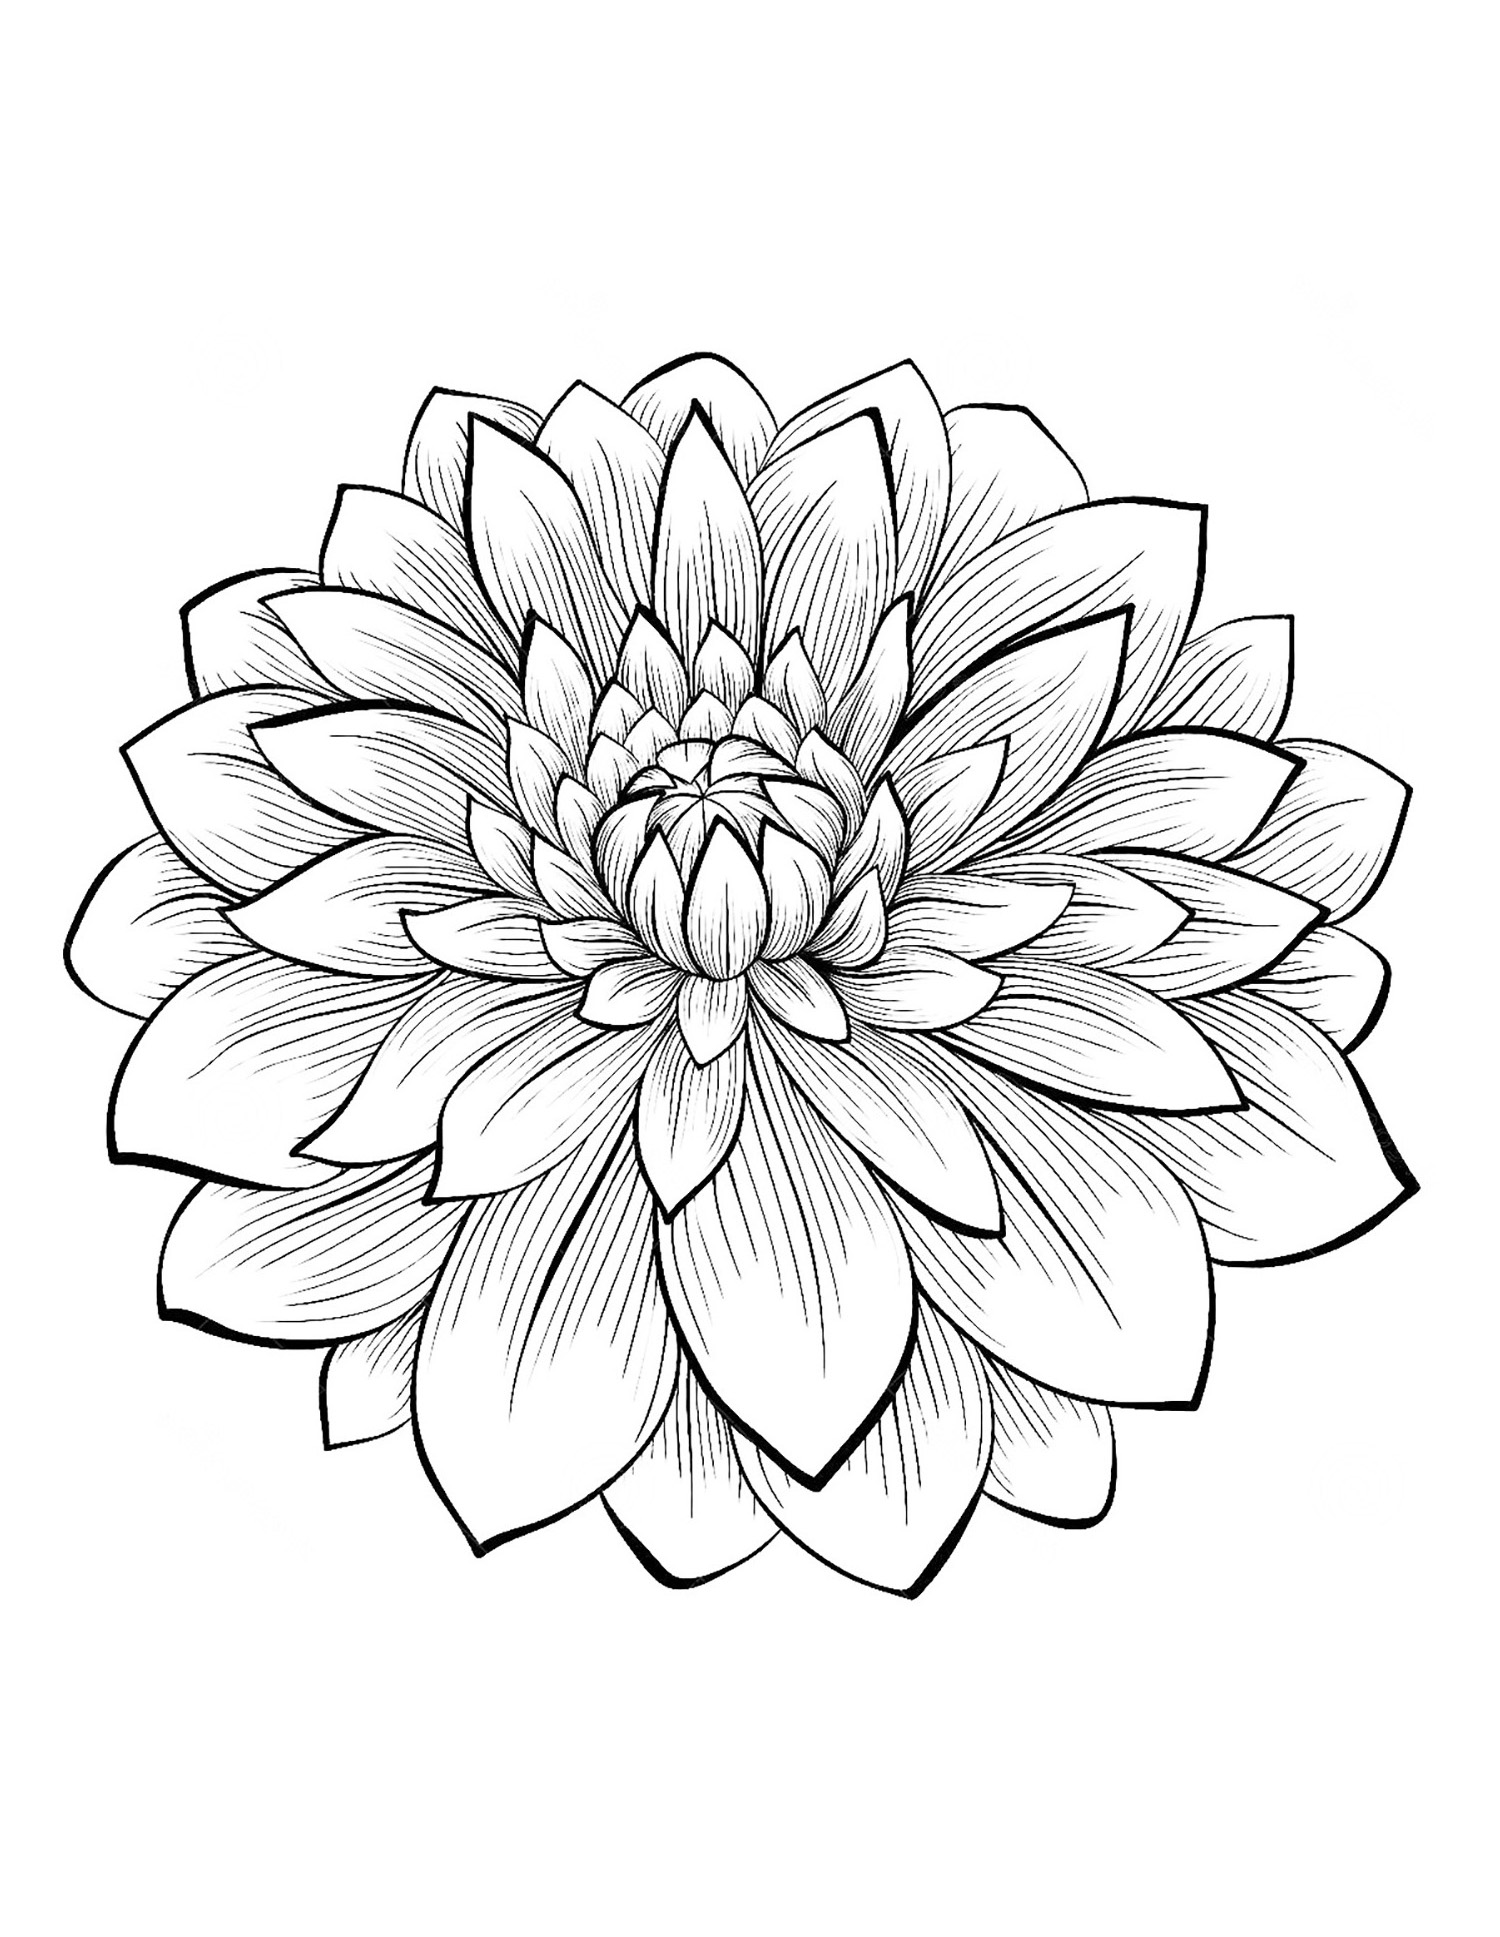 coloring pages for adults of flowers - dahlia flower flowers adult coloring pages